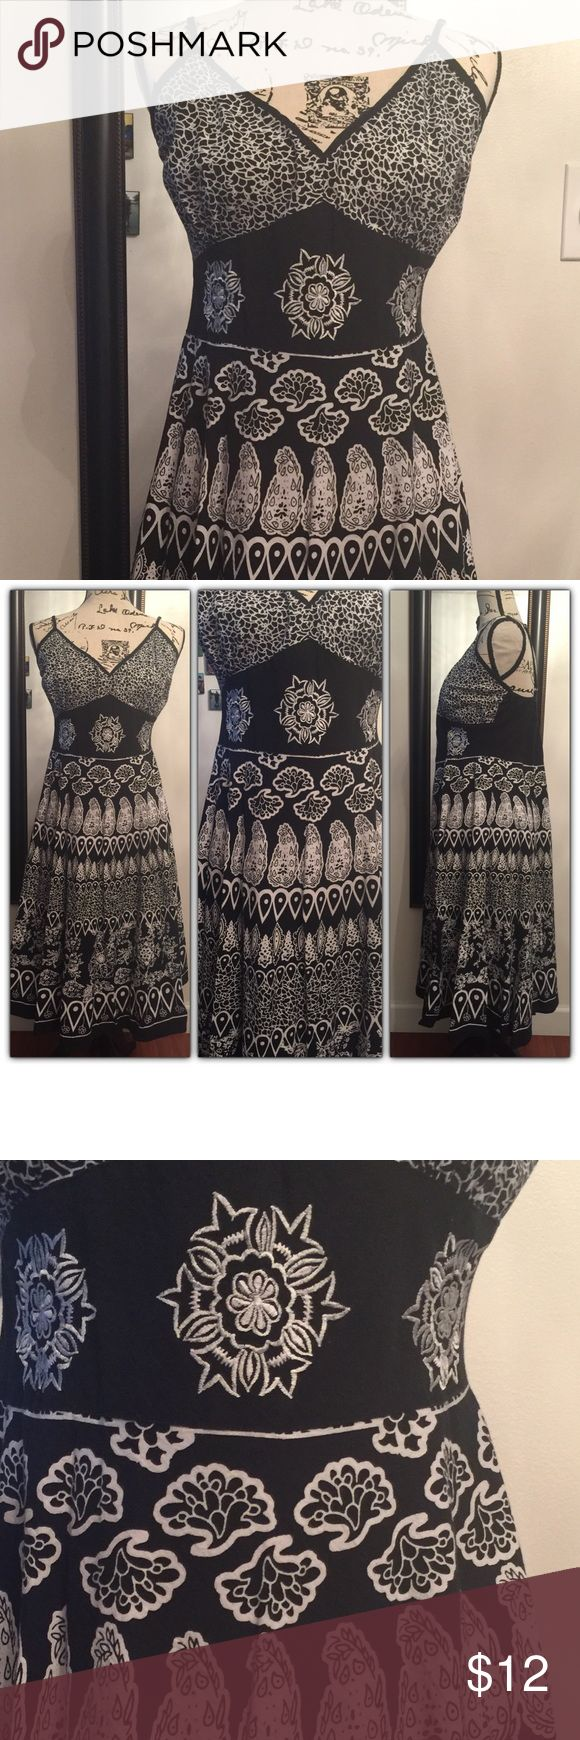 Black and white flare dress Adorable flare dress perfect for a brunch or any occasion. Dresses